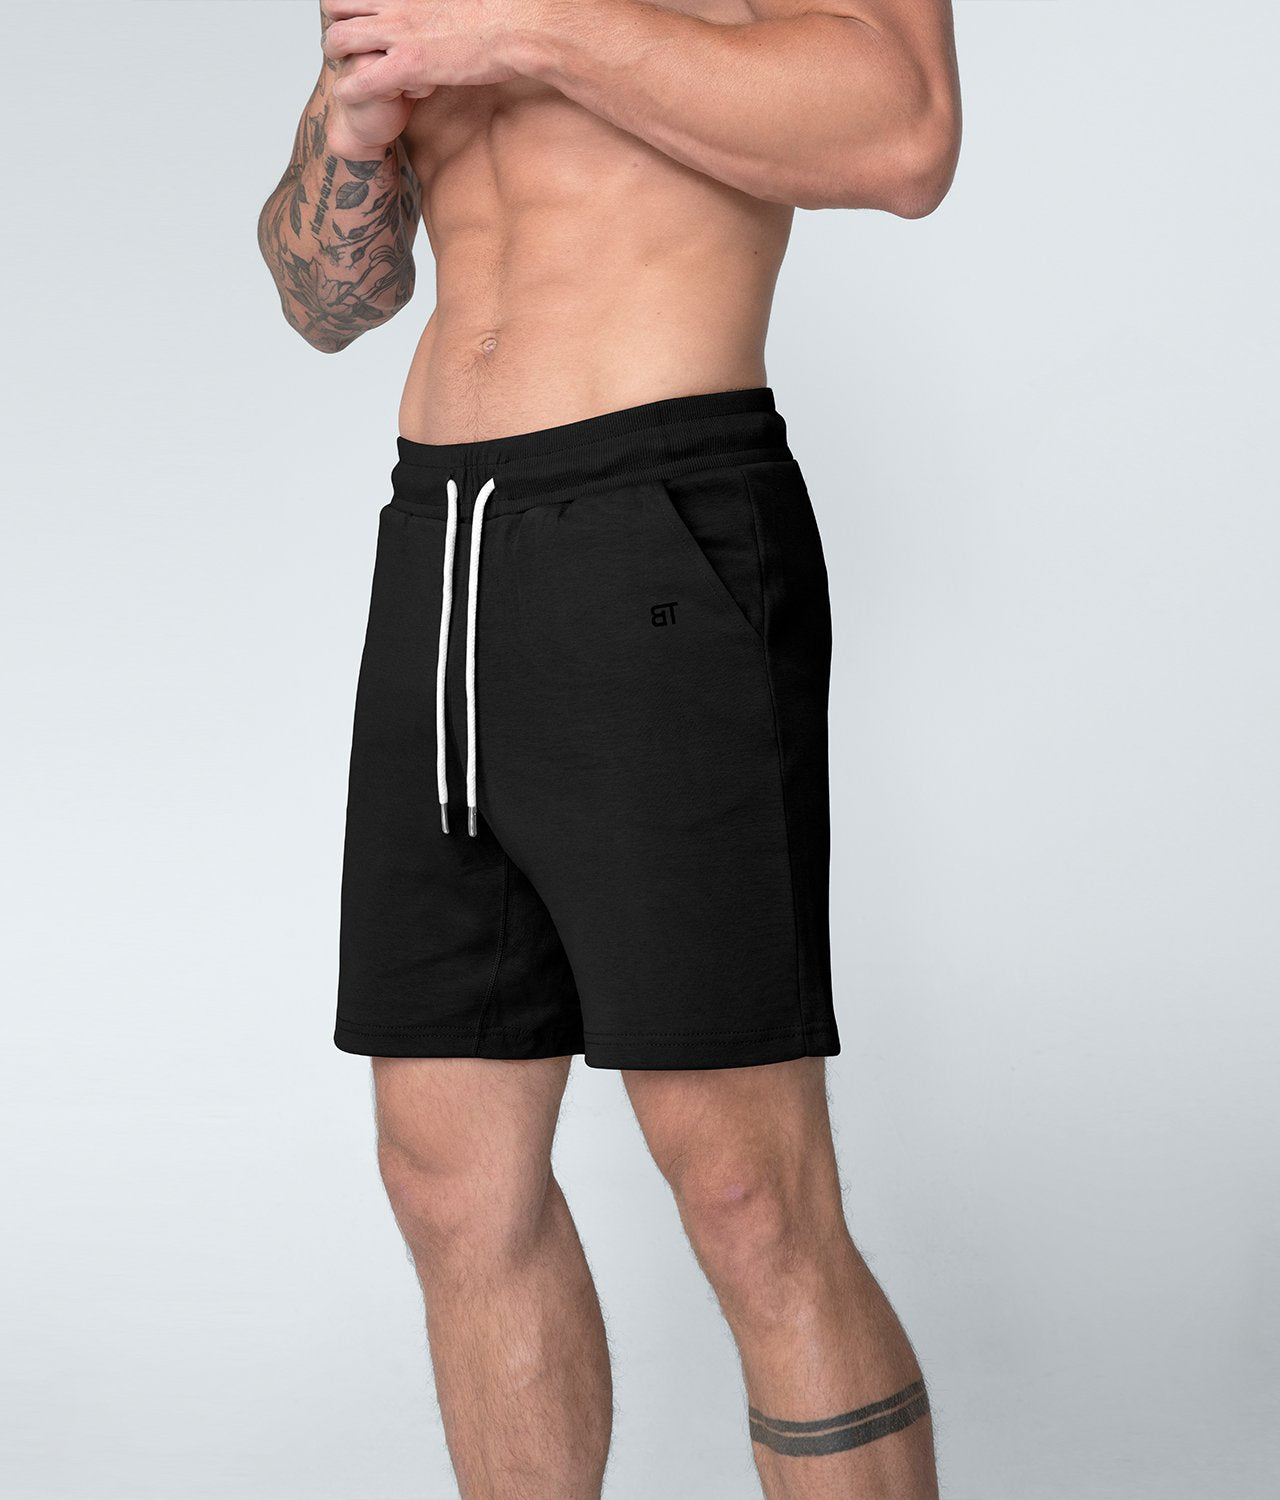 Born Tough United Kingdom Core Fit Zippered Breathable Black Gym Workout Shorts for Men